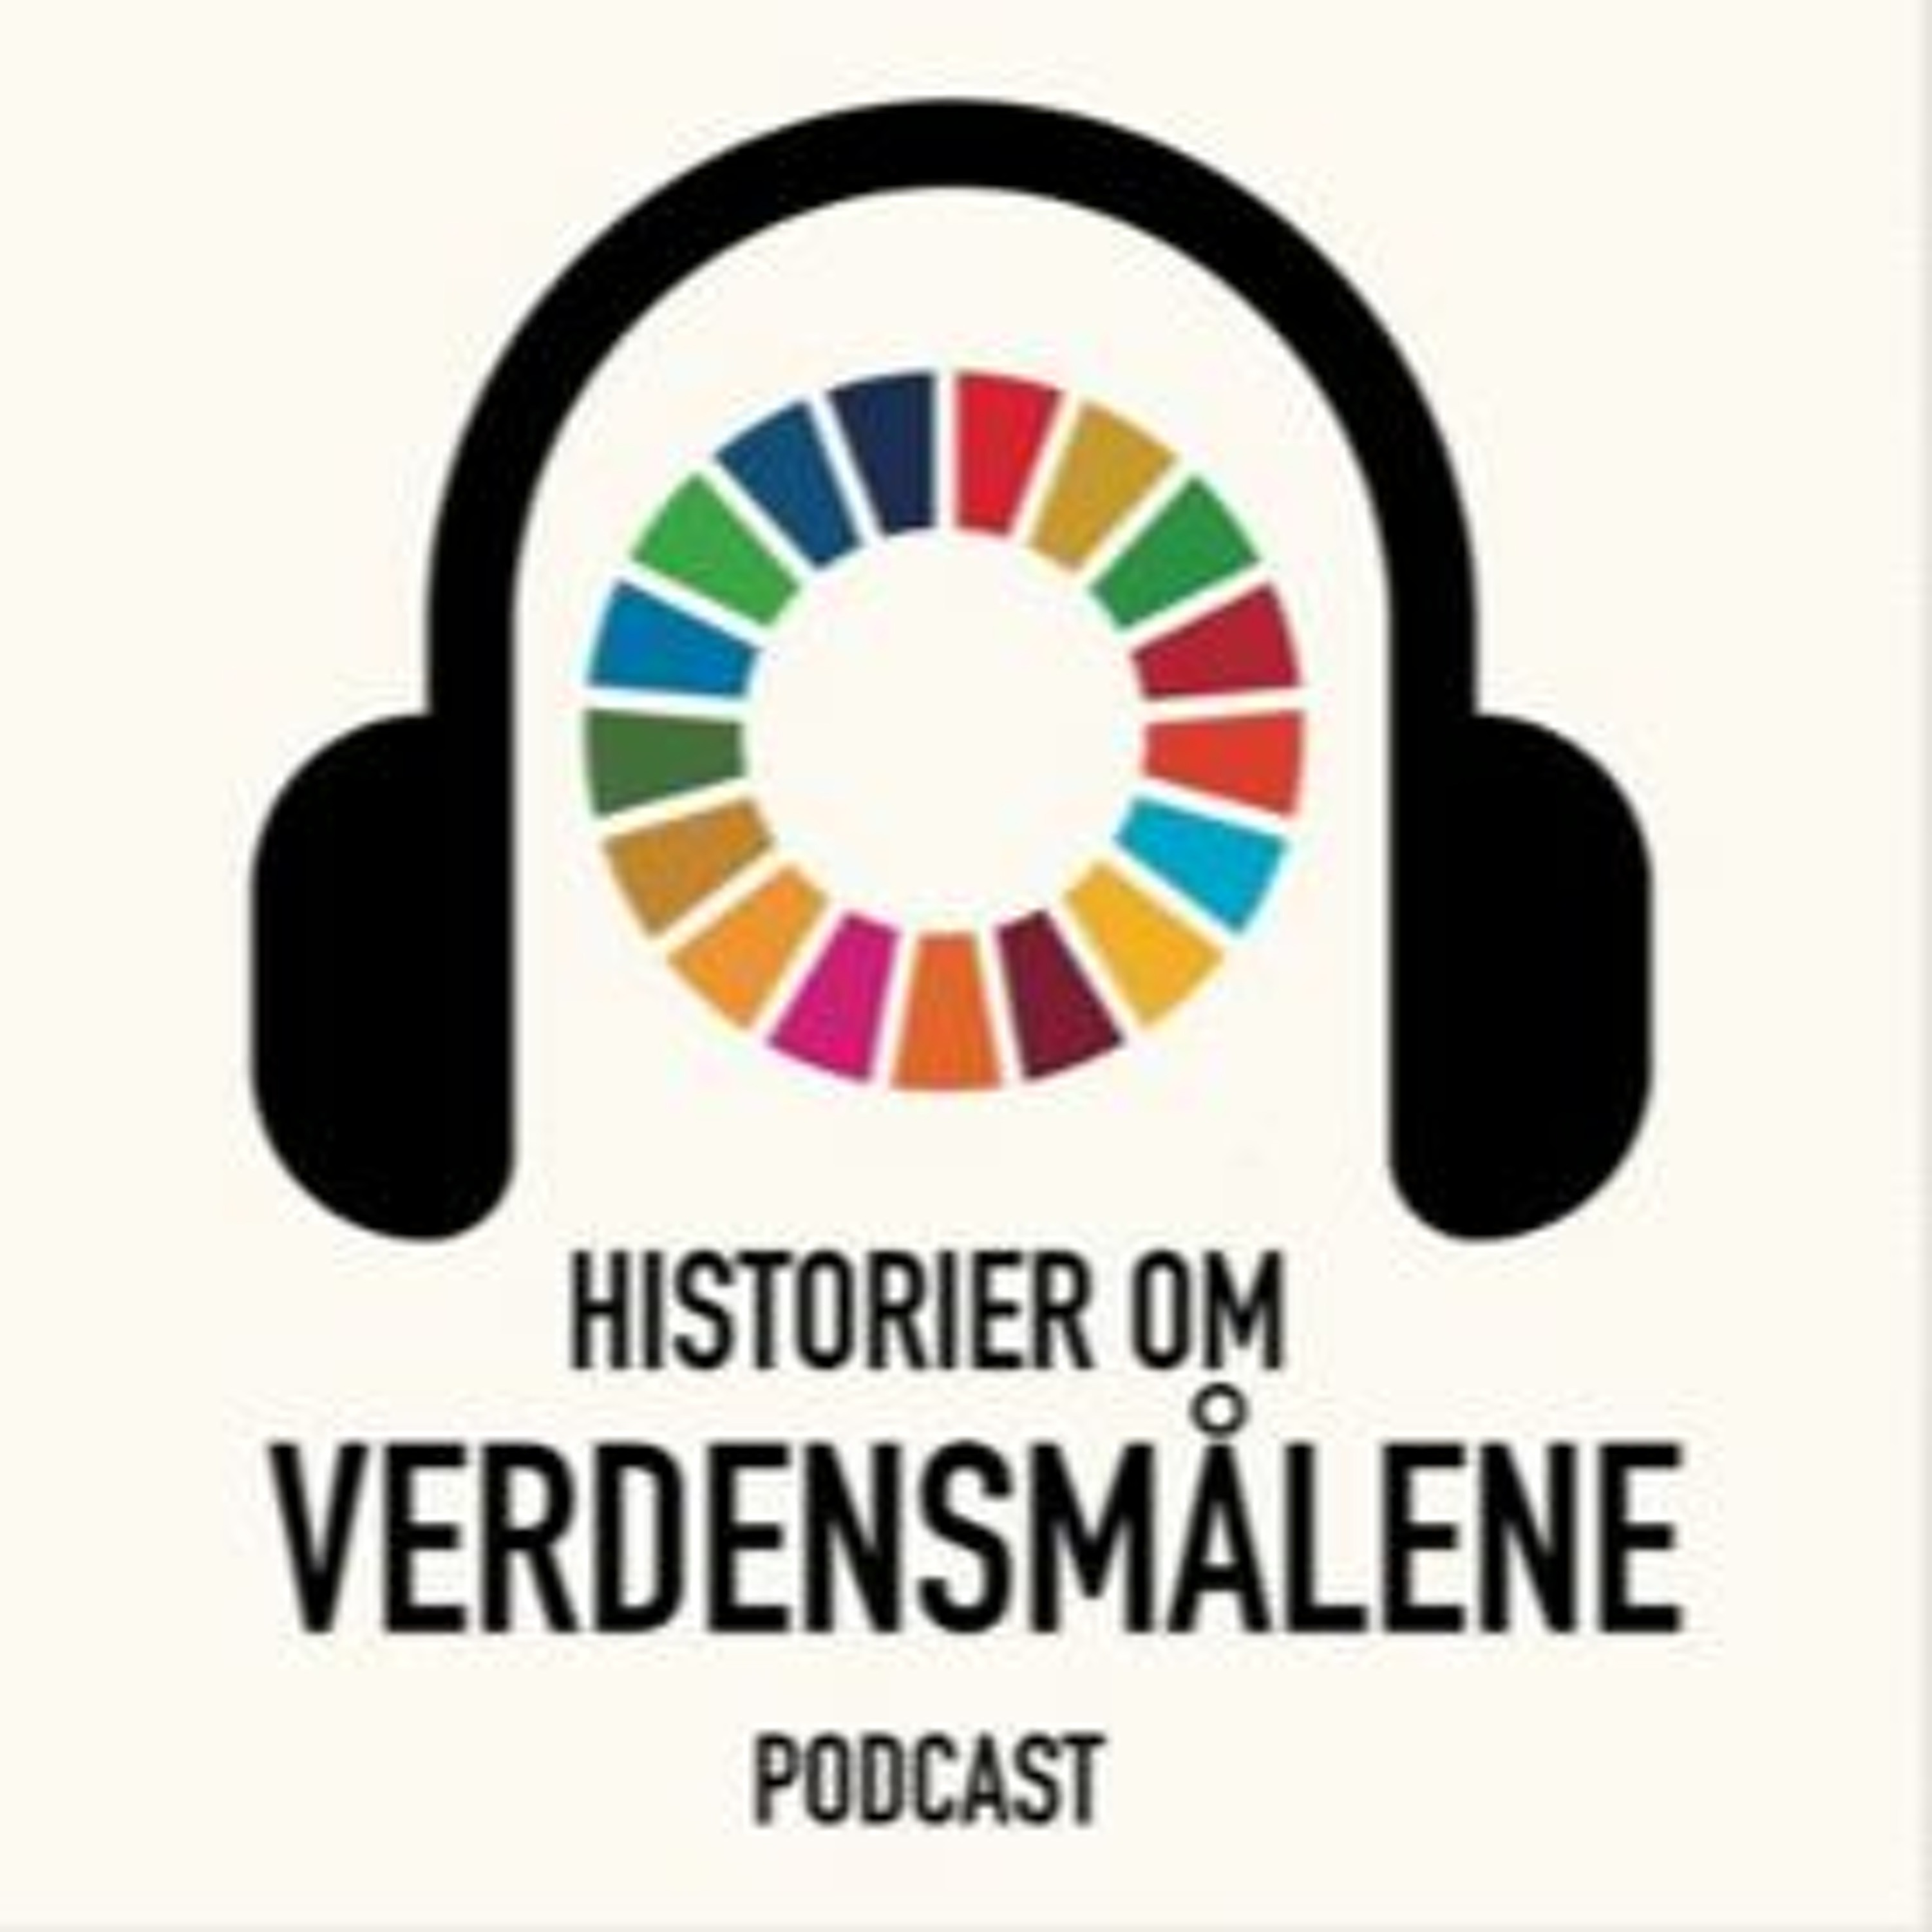 YOUTH - Stories about the Global Goals with Jayathma Wickramanayaka